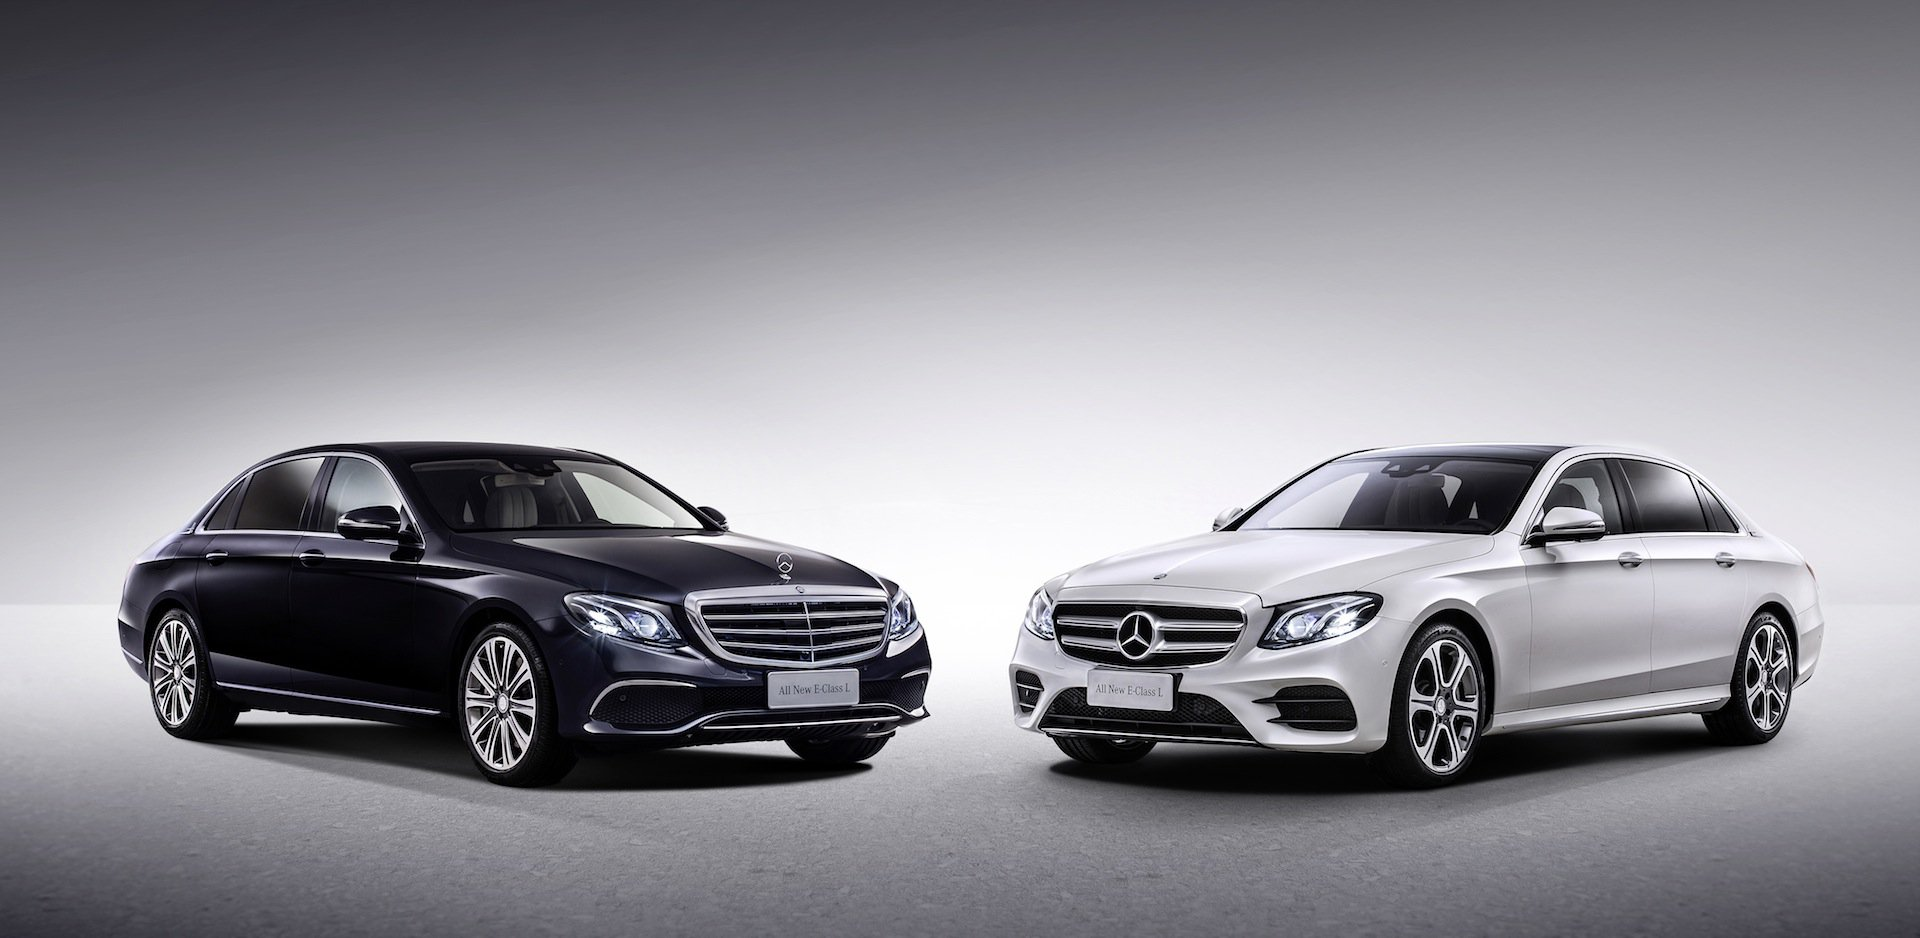 New gen mercedes benz e class to launch in india by march 2017 for Mercedes benz e class 2017 black